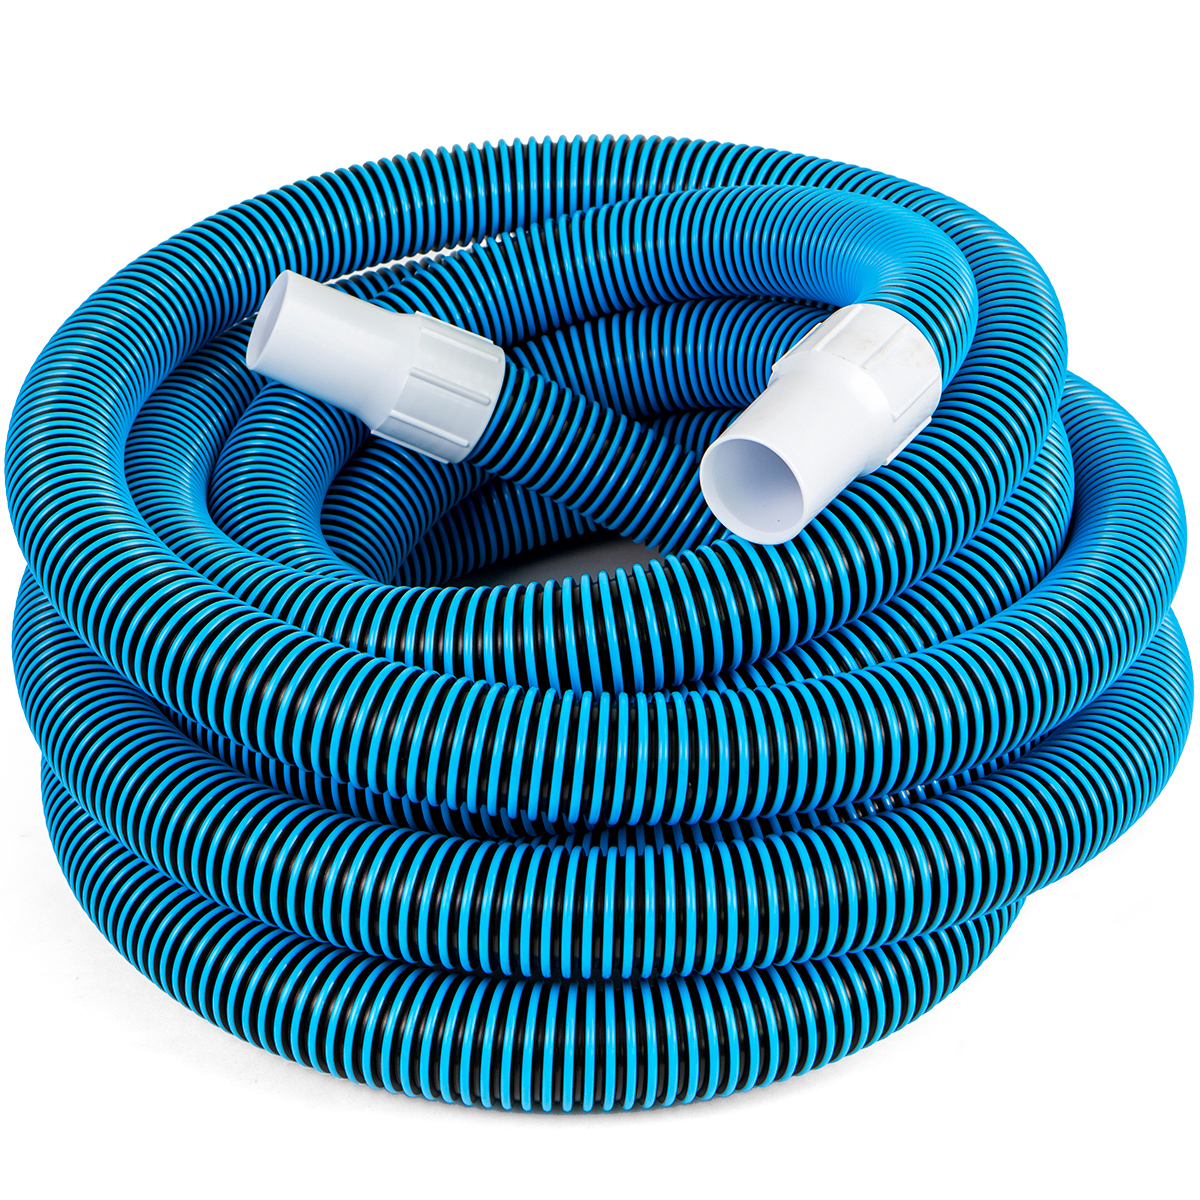 Details about Deluxe Swimming Pool No Kinks Vacuum Hose Swivel Cuff  1-12\